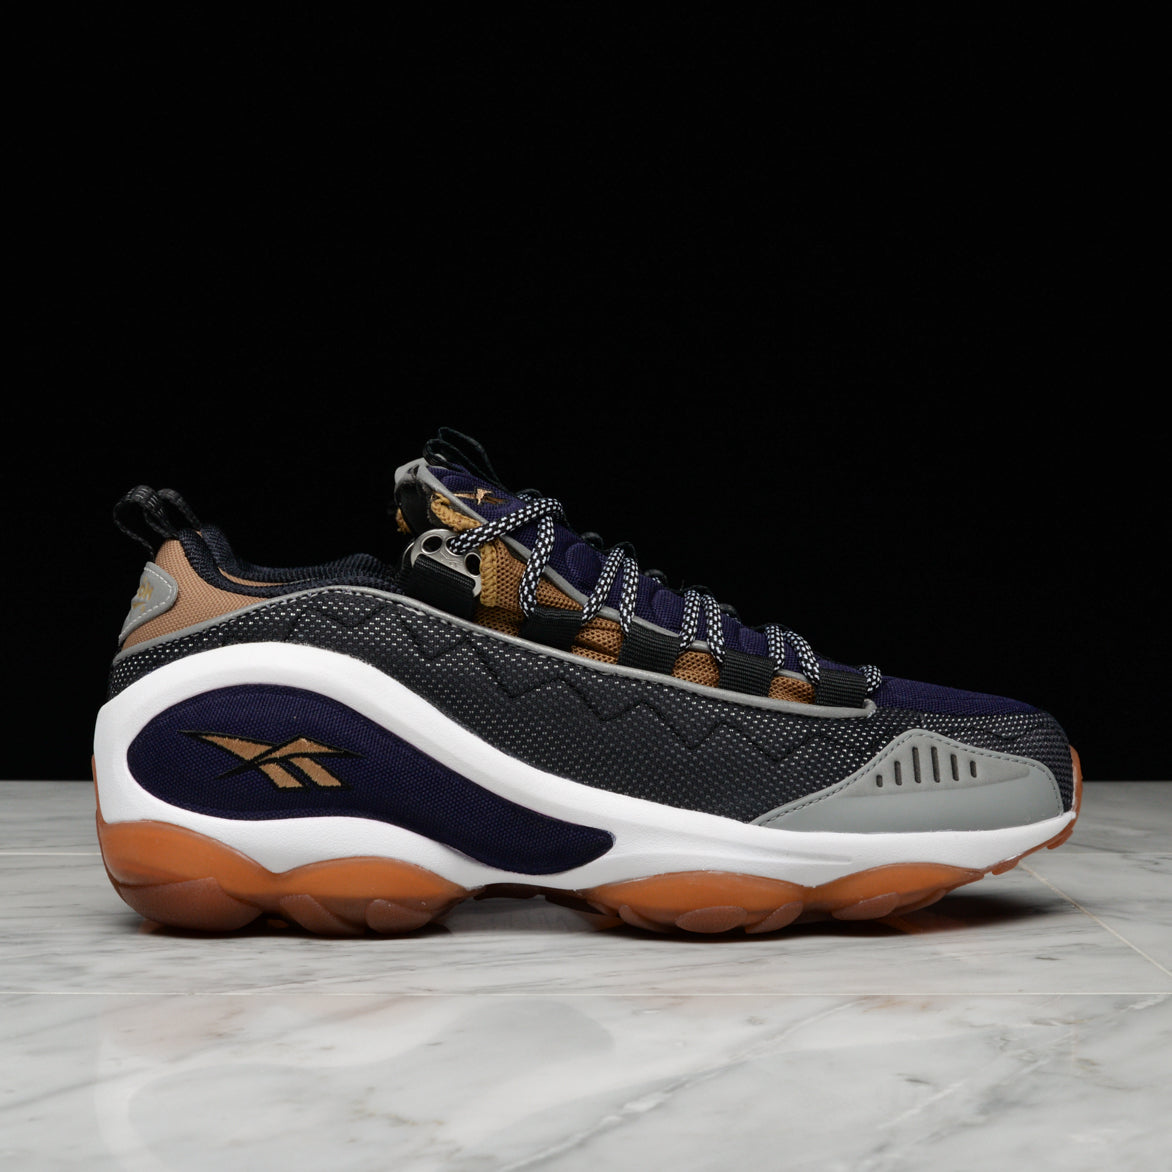 DMX RUN 10 - BLACK / TWEED BROWN